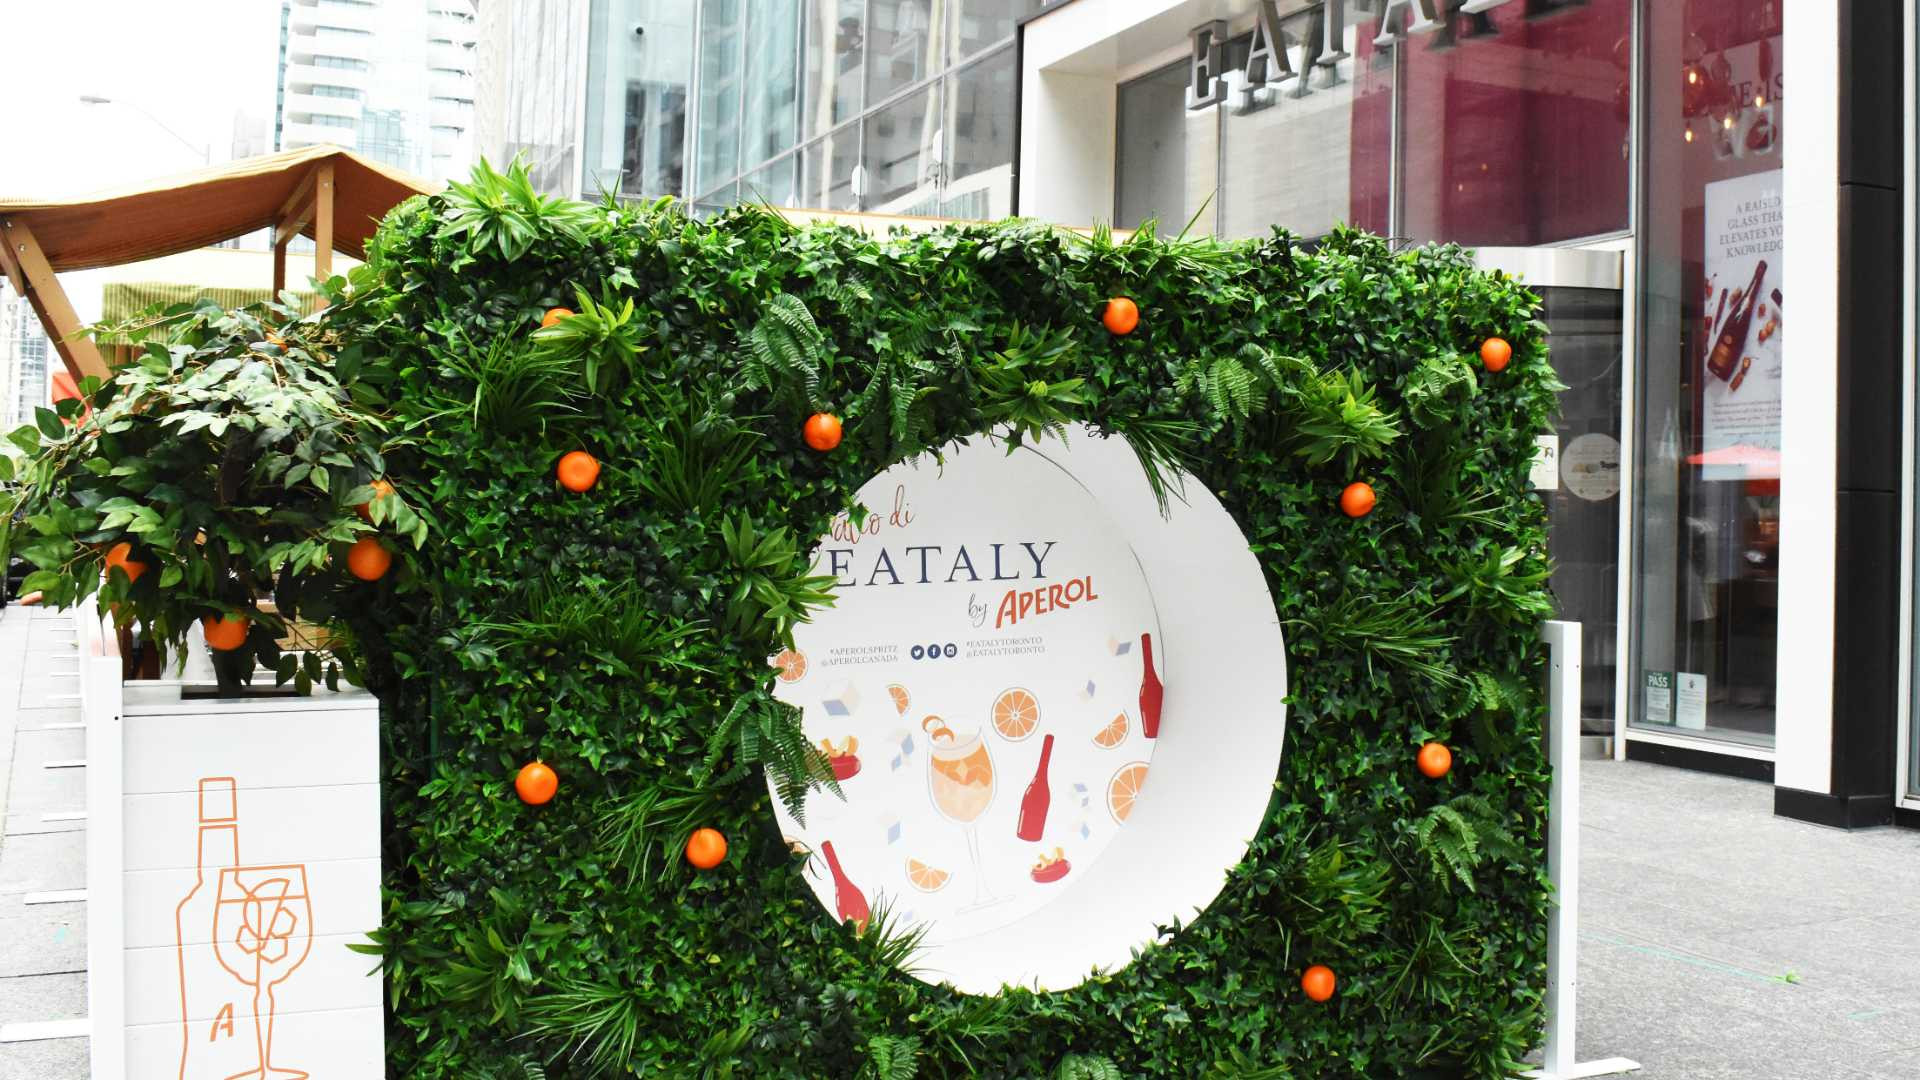 Il Patio di Eataly by Aperol | The pop-up